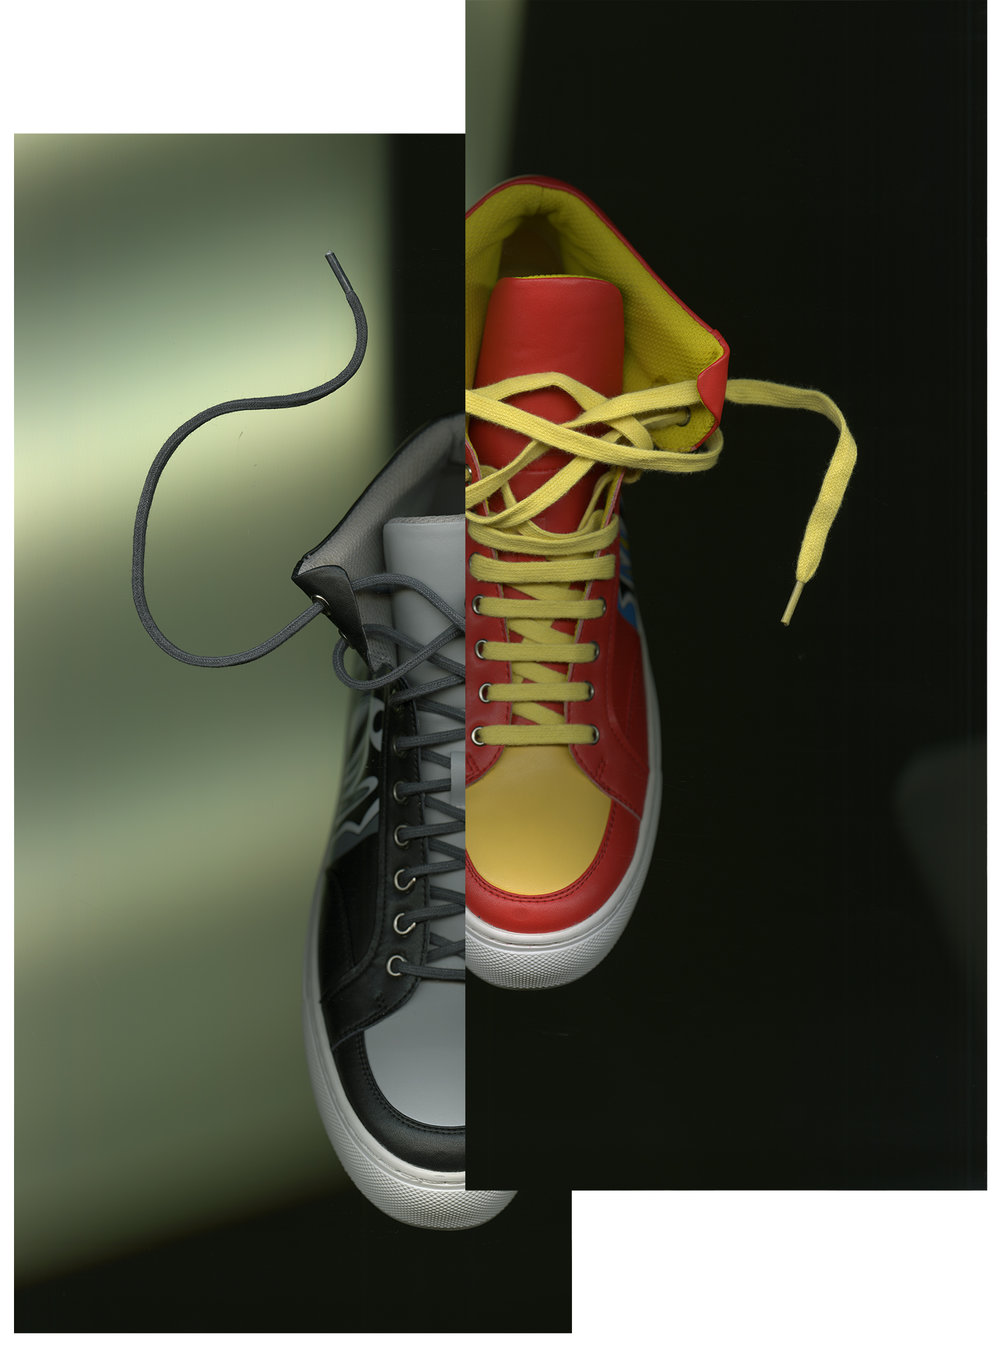 Shoes designed by Shih Kai Tai, MFA Fashion Merchandising.